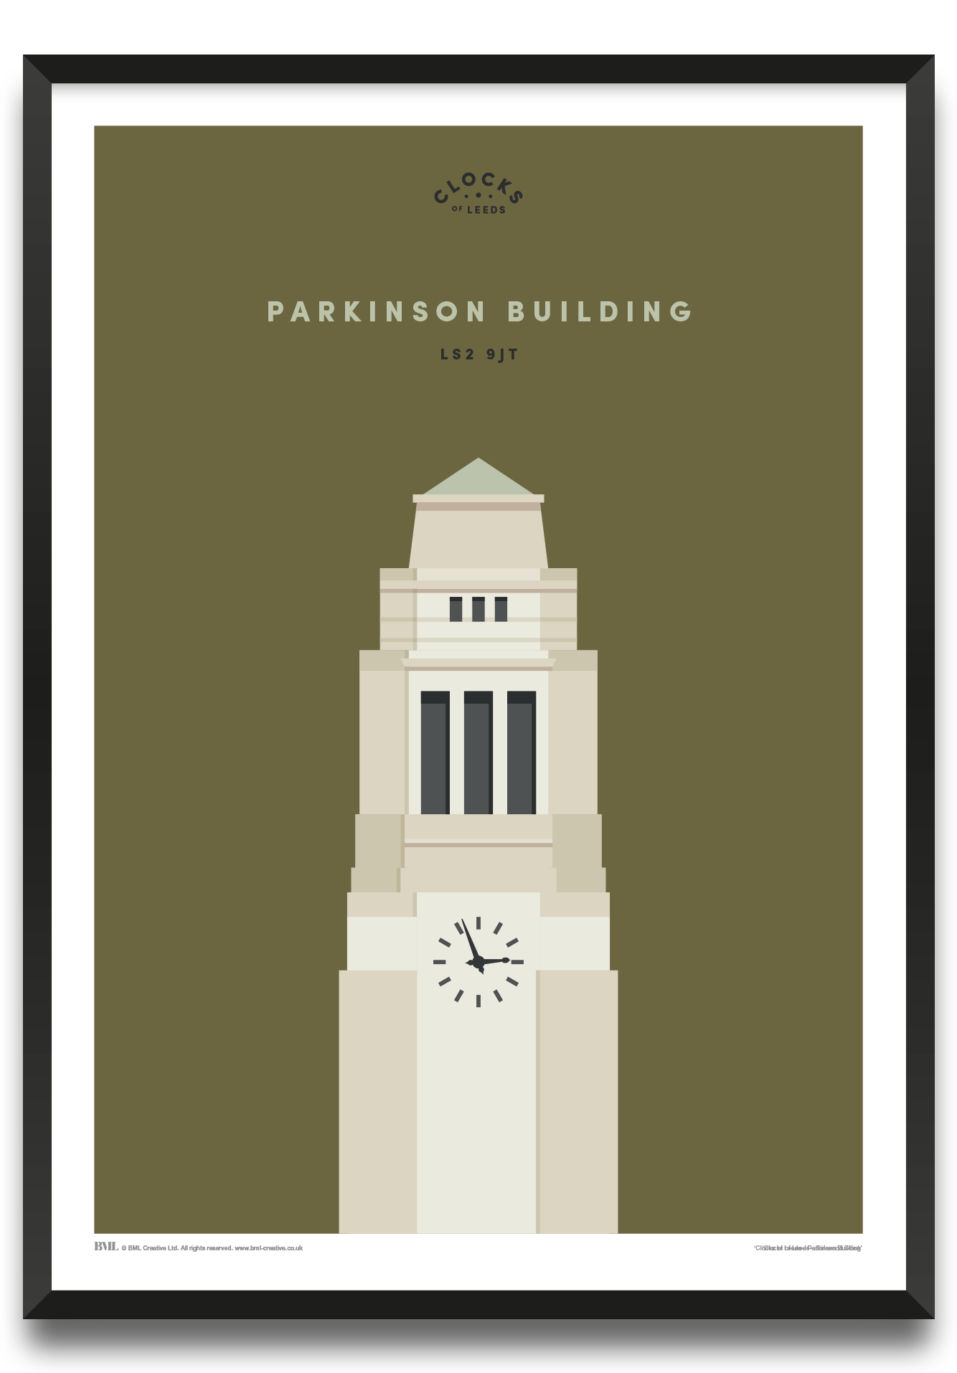 Parkinson Building at Leeds University, clocks of Leeds art print by Prints For Charity